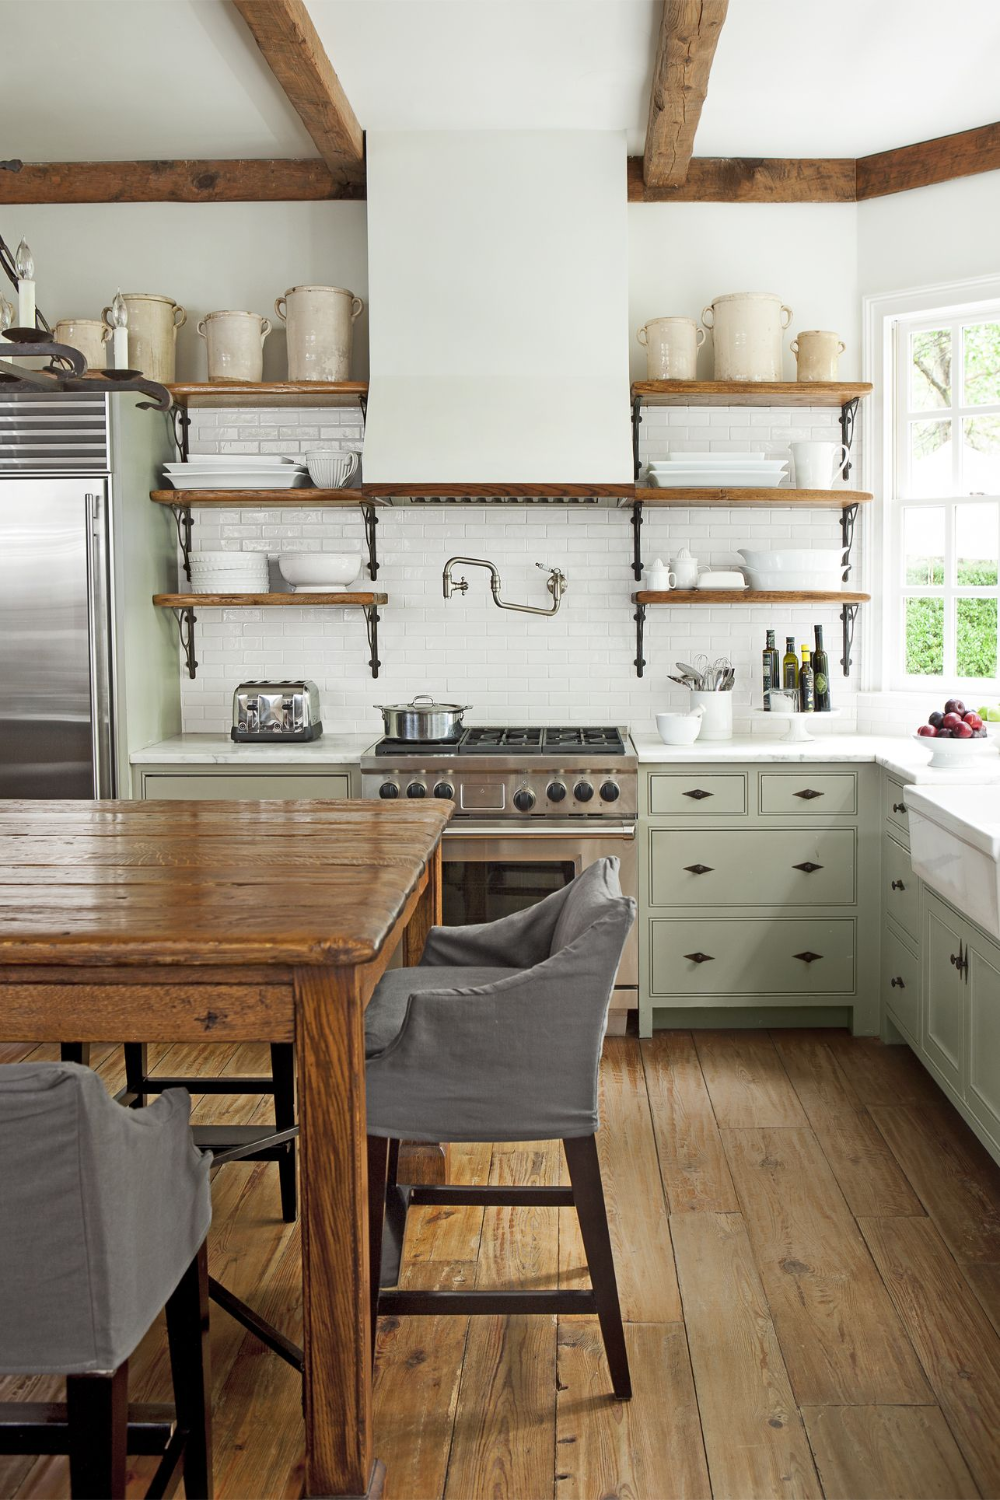 32 Kitchen Trends for 2020 That We Predict Will Be